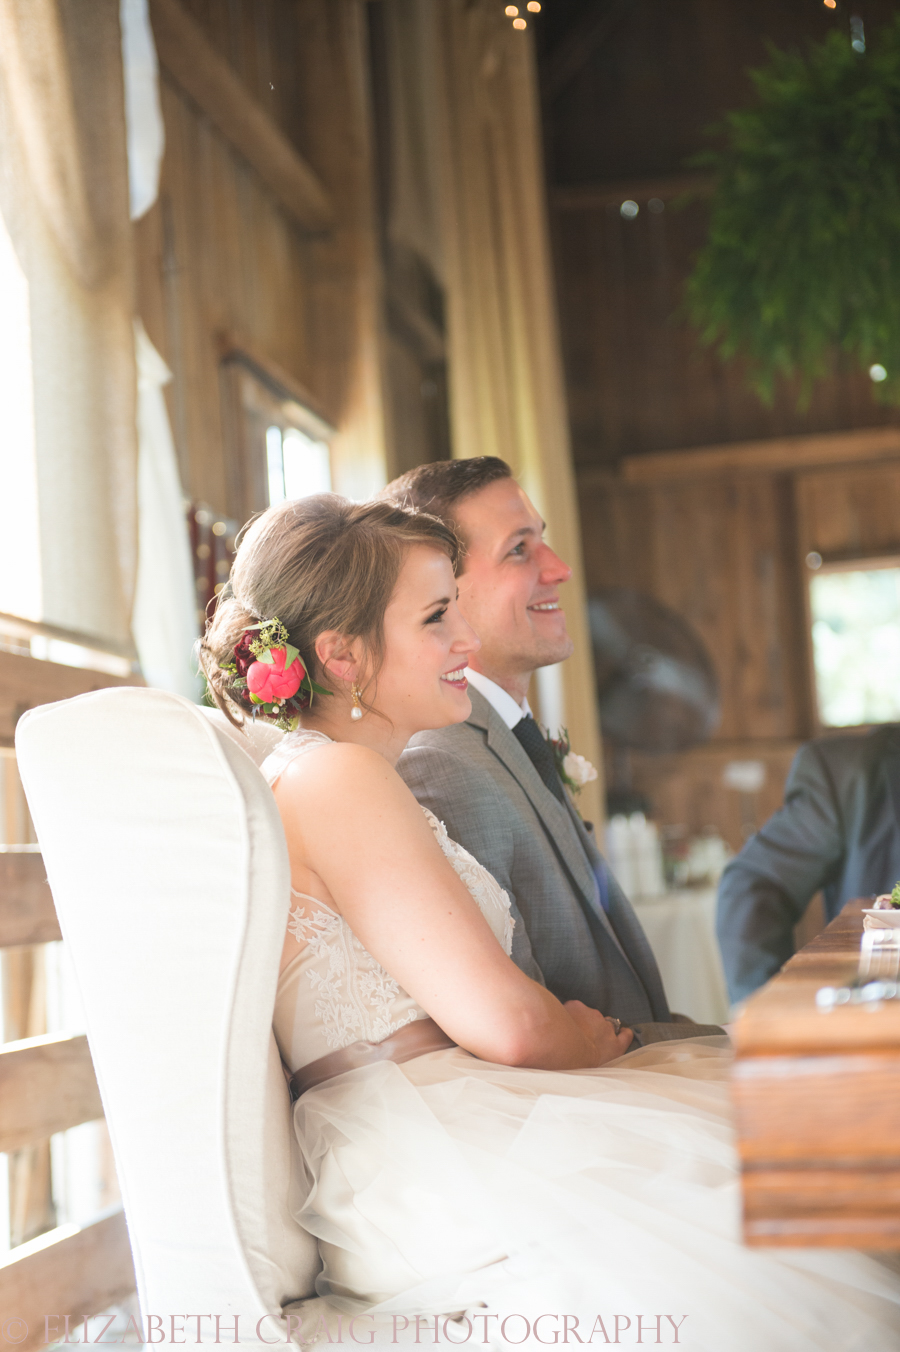 Shady Elms Farm Weddings and Receptions Elizabeth Craig Photography-0133